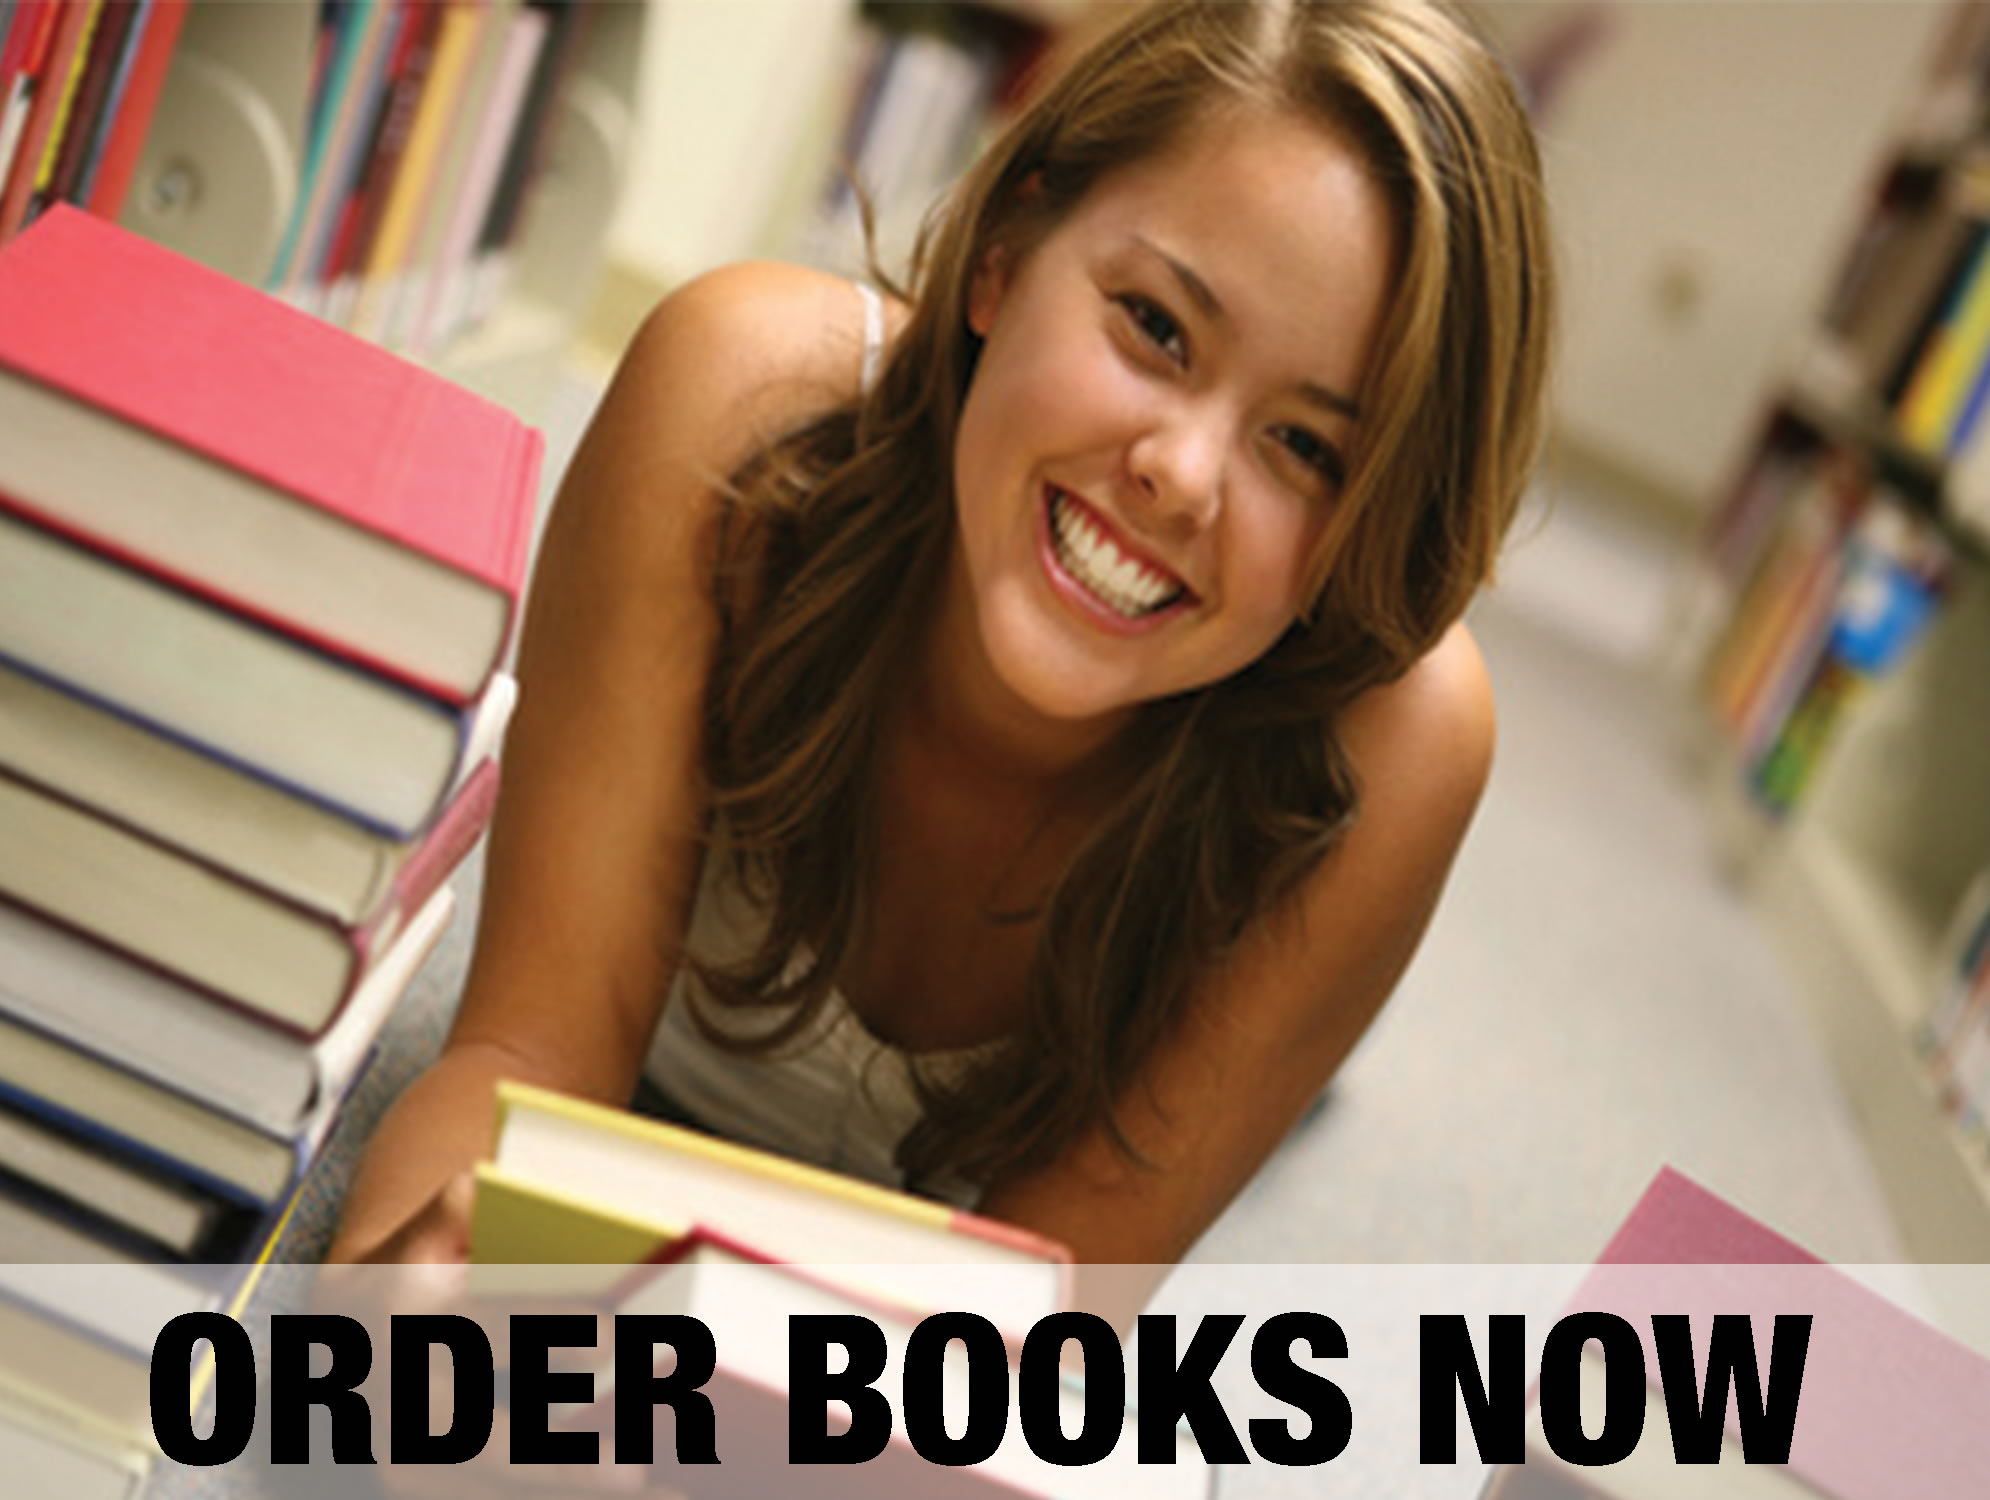 Order_books_now